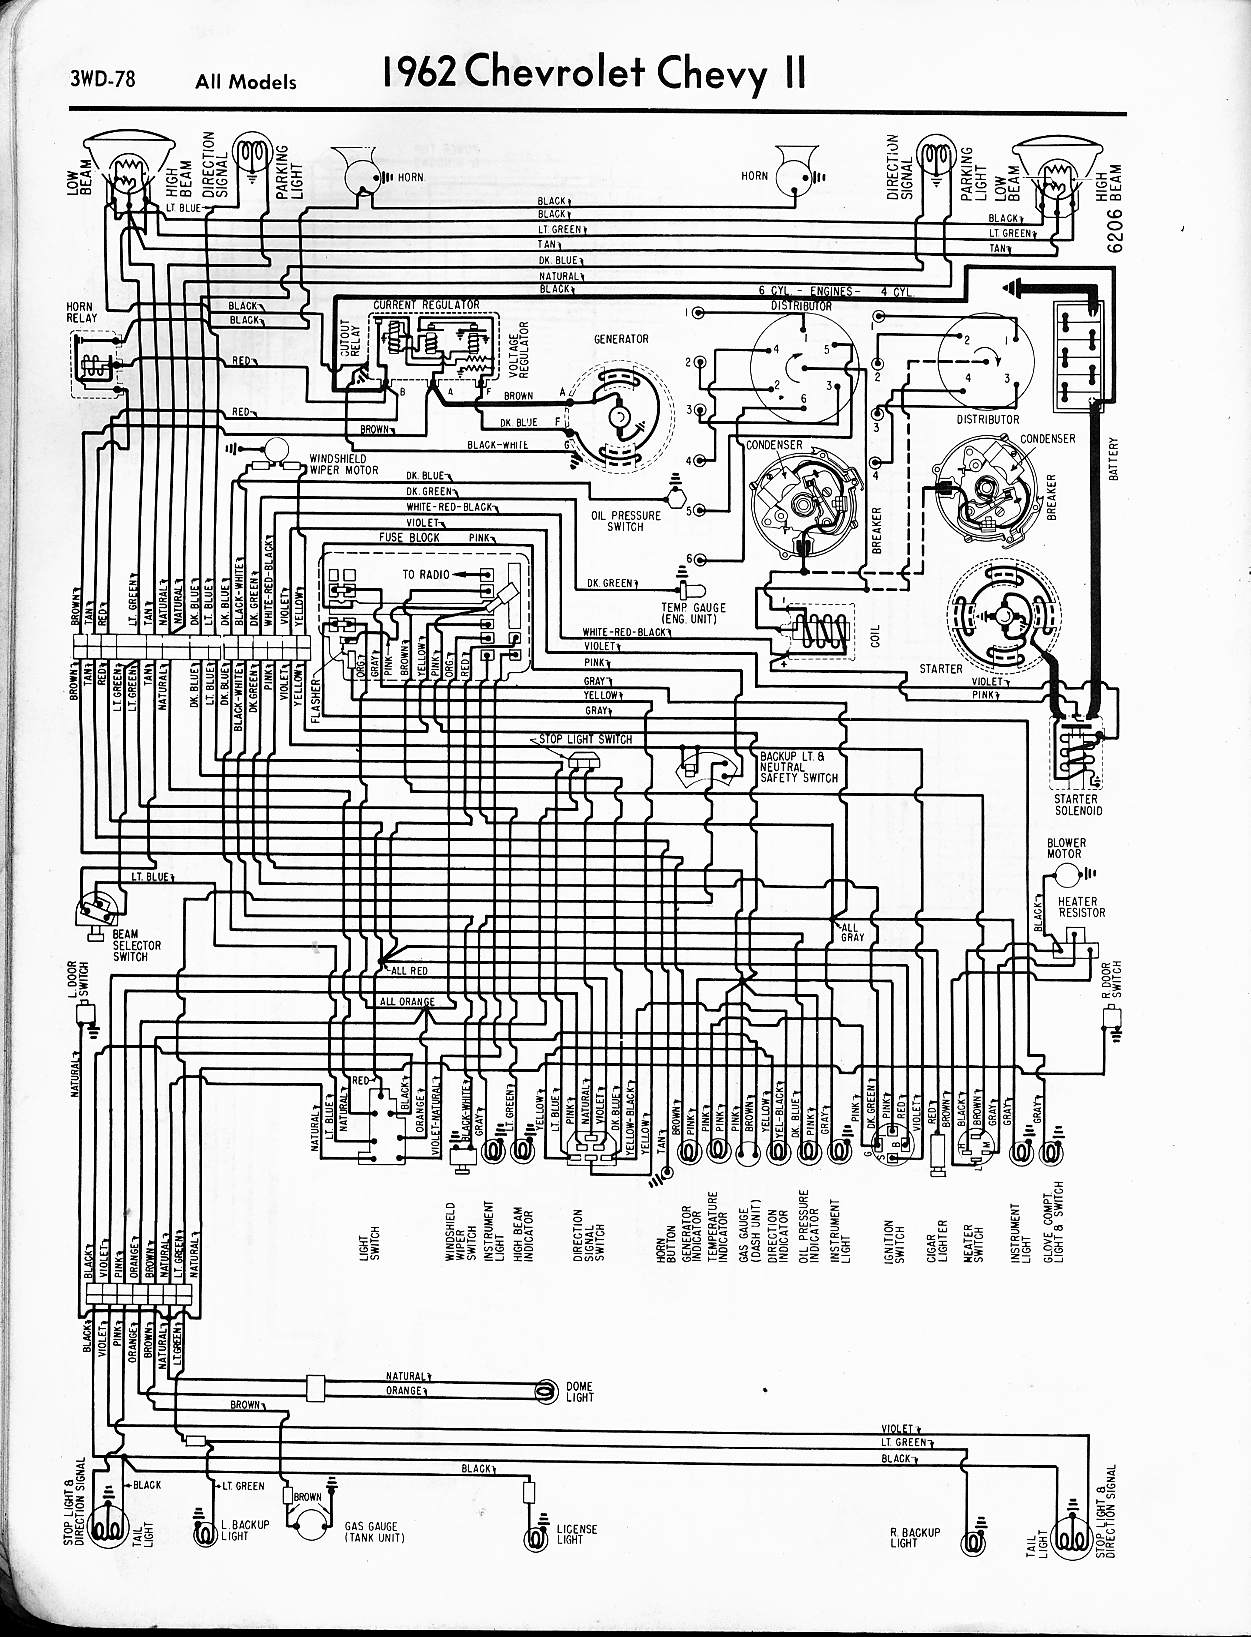 1966 Impala Convertible Wiring Diagram Guide And Troubleshooting 1965 F100 Harness Get Free Image About 1967 Detailed Rh 15 7 Ocotillo Paysage Com Ss